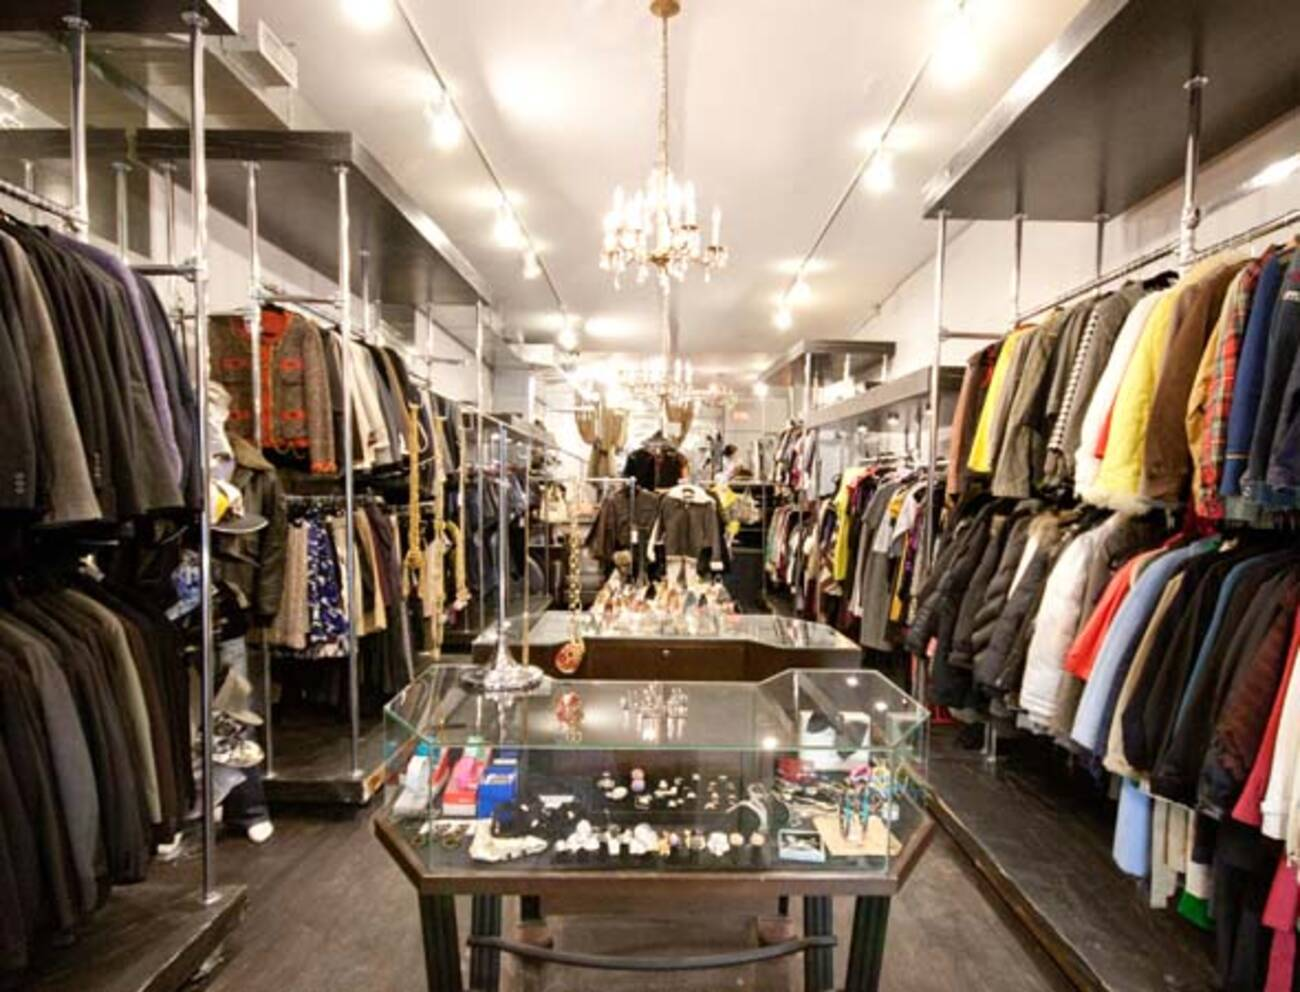 Designer consignment boutique a hit on queen west for Consignment wedding dresses bay area